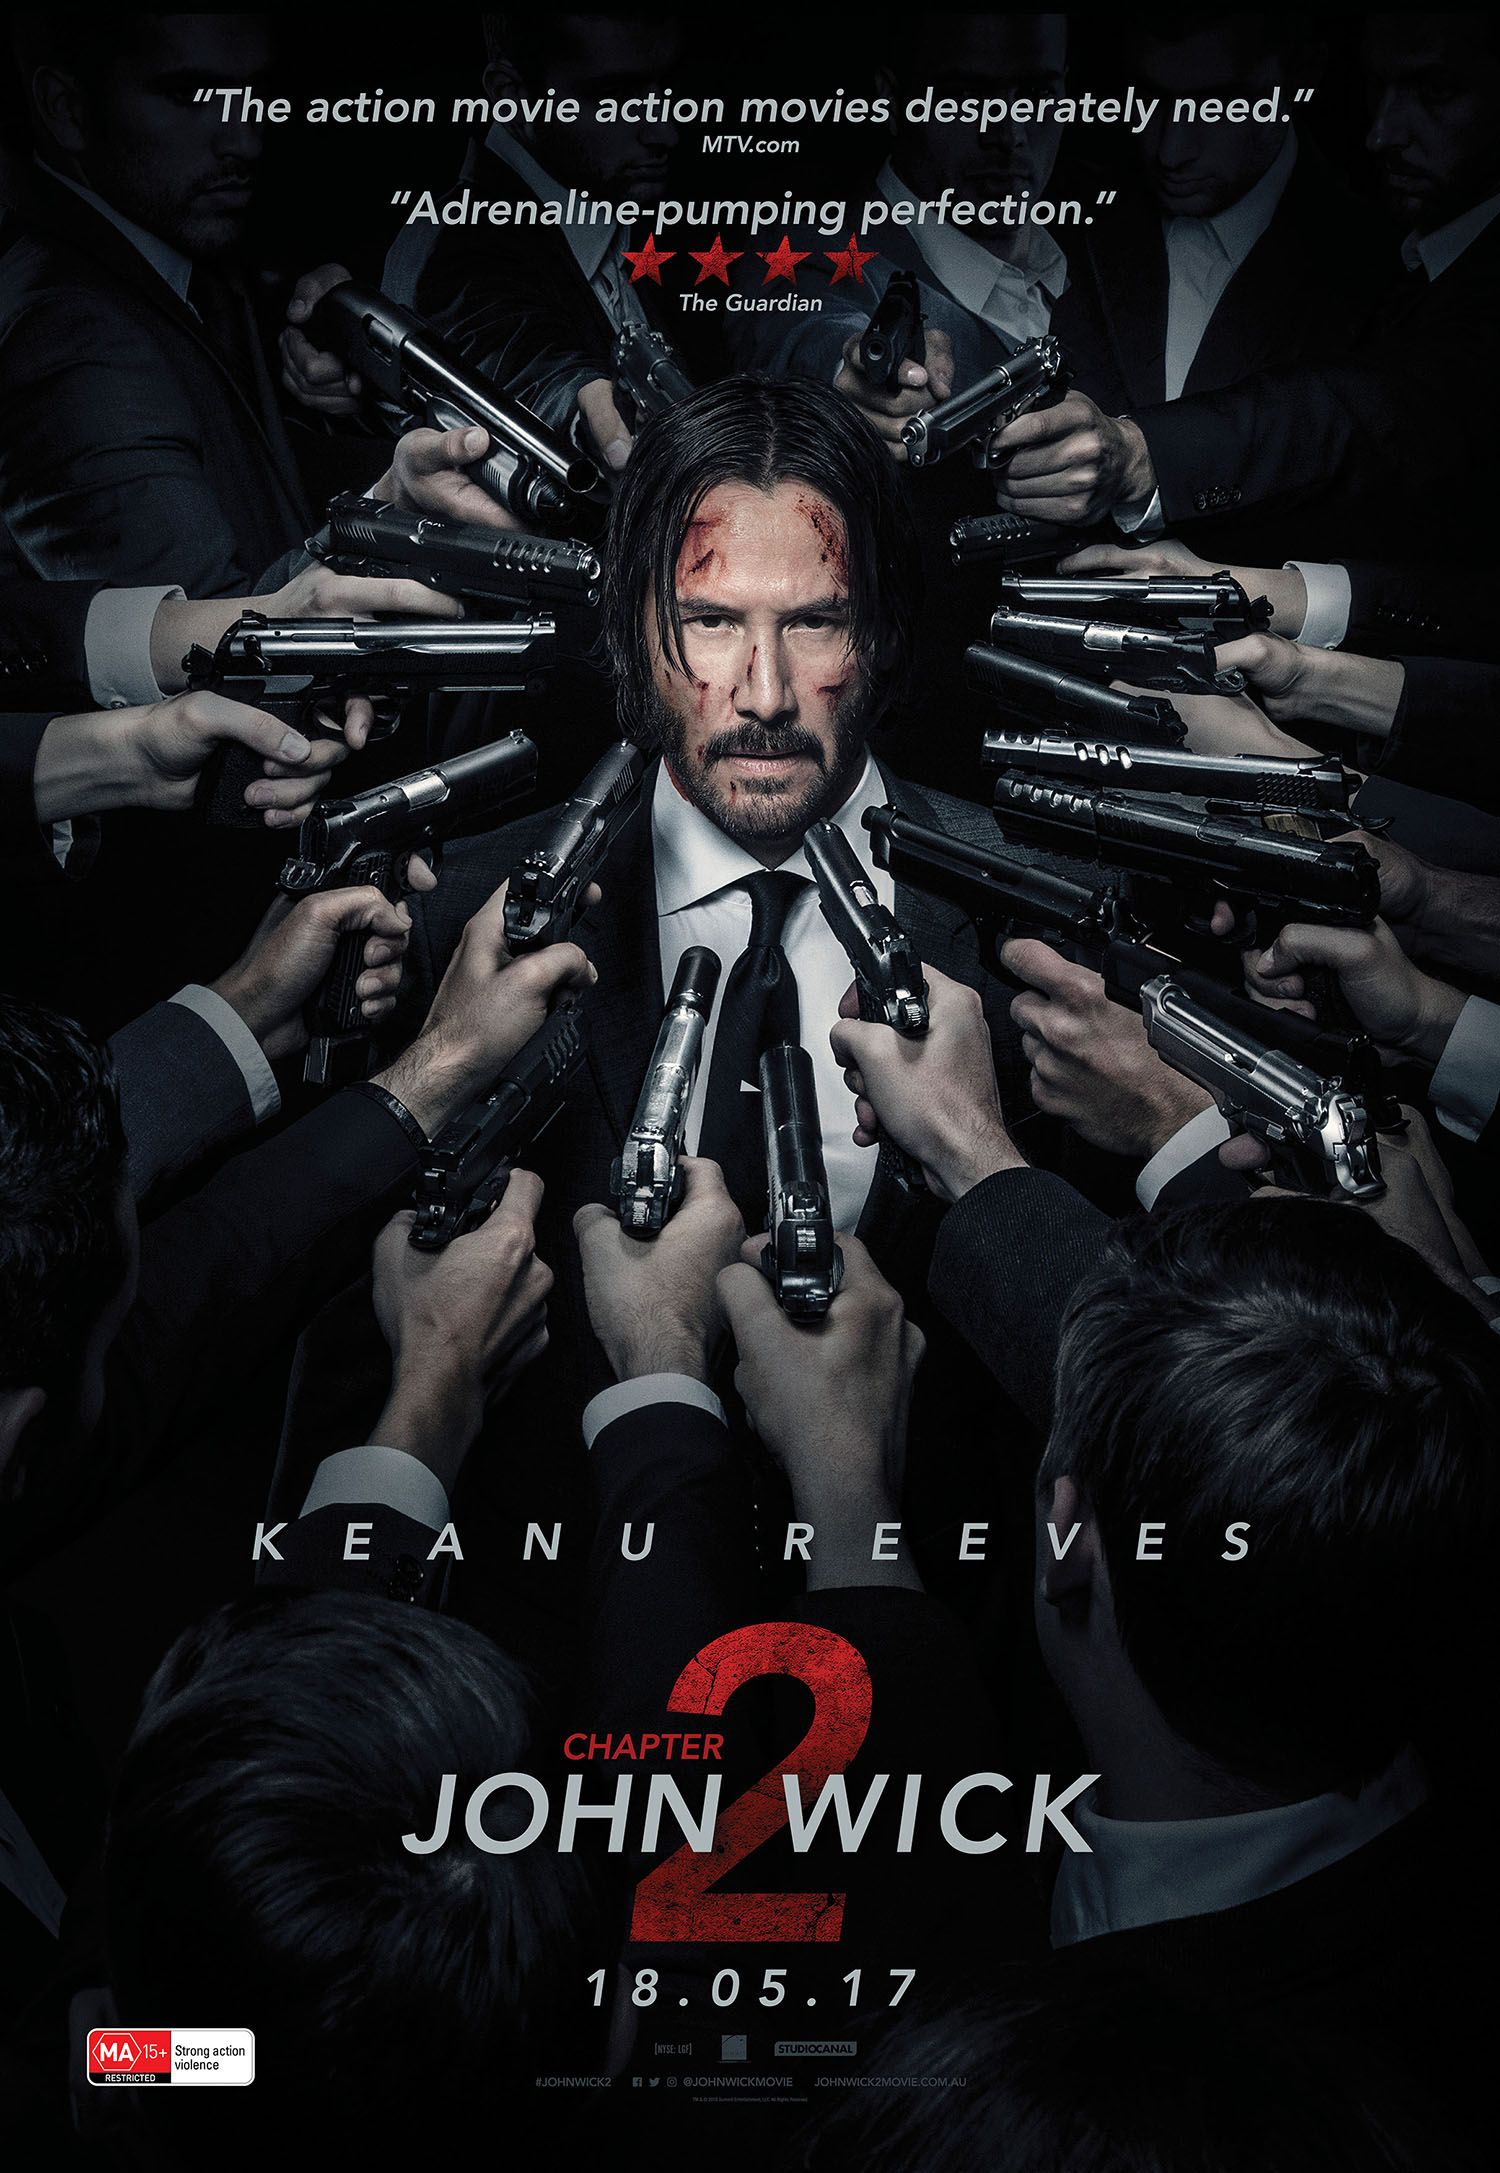 If you loved #JOHNWICK you are going to jizz at JOHN WICK: CHAPTER 2. A perfect instalment in the trilogy that gives you everything you want in a JOHN WICK movie. Out Thursday in Australia. Cannot wait for Chapter 3!!! http://saltypopcorn.com.au/john-wick-chapter-2-review/